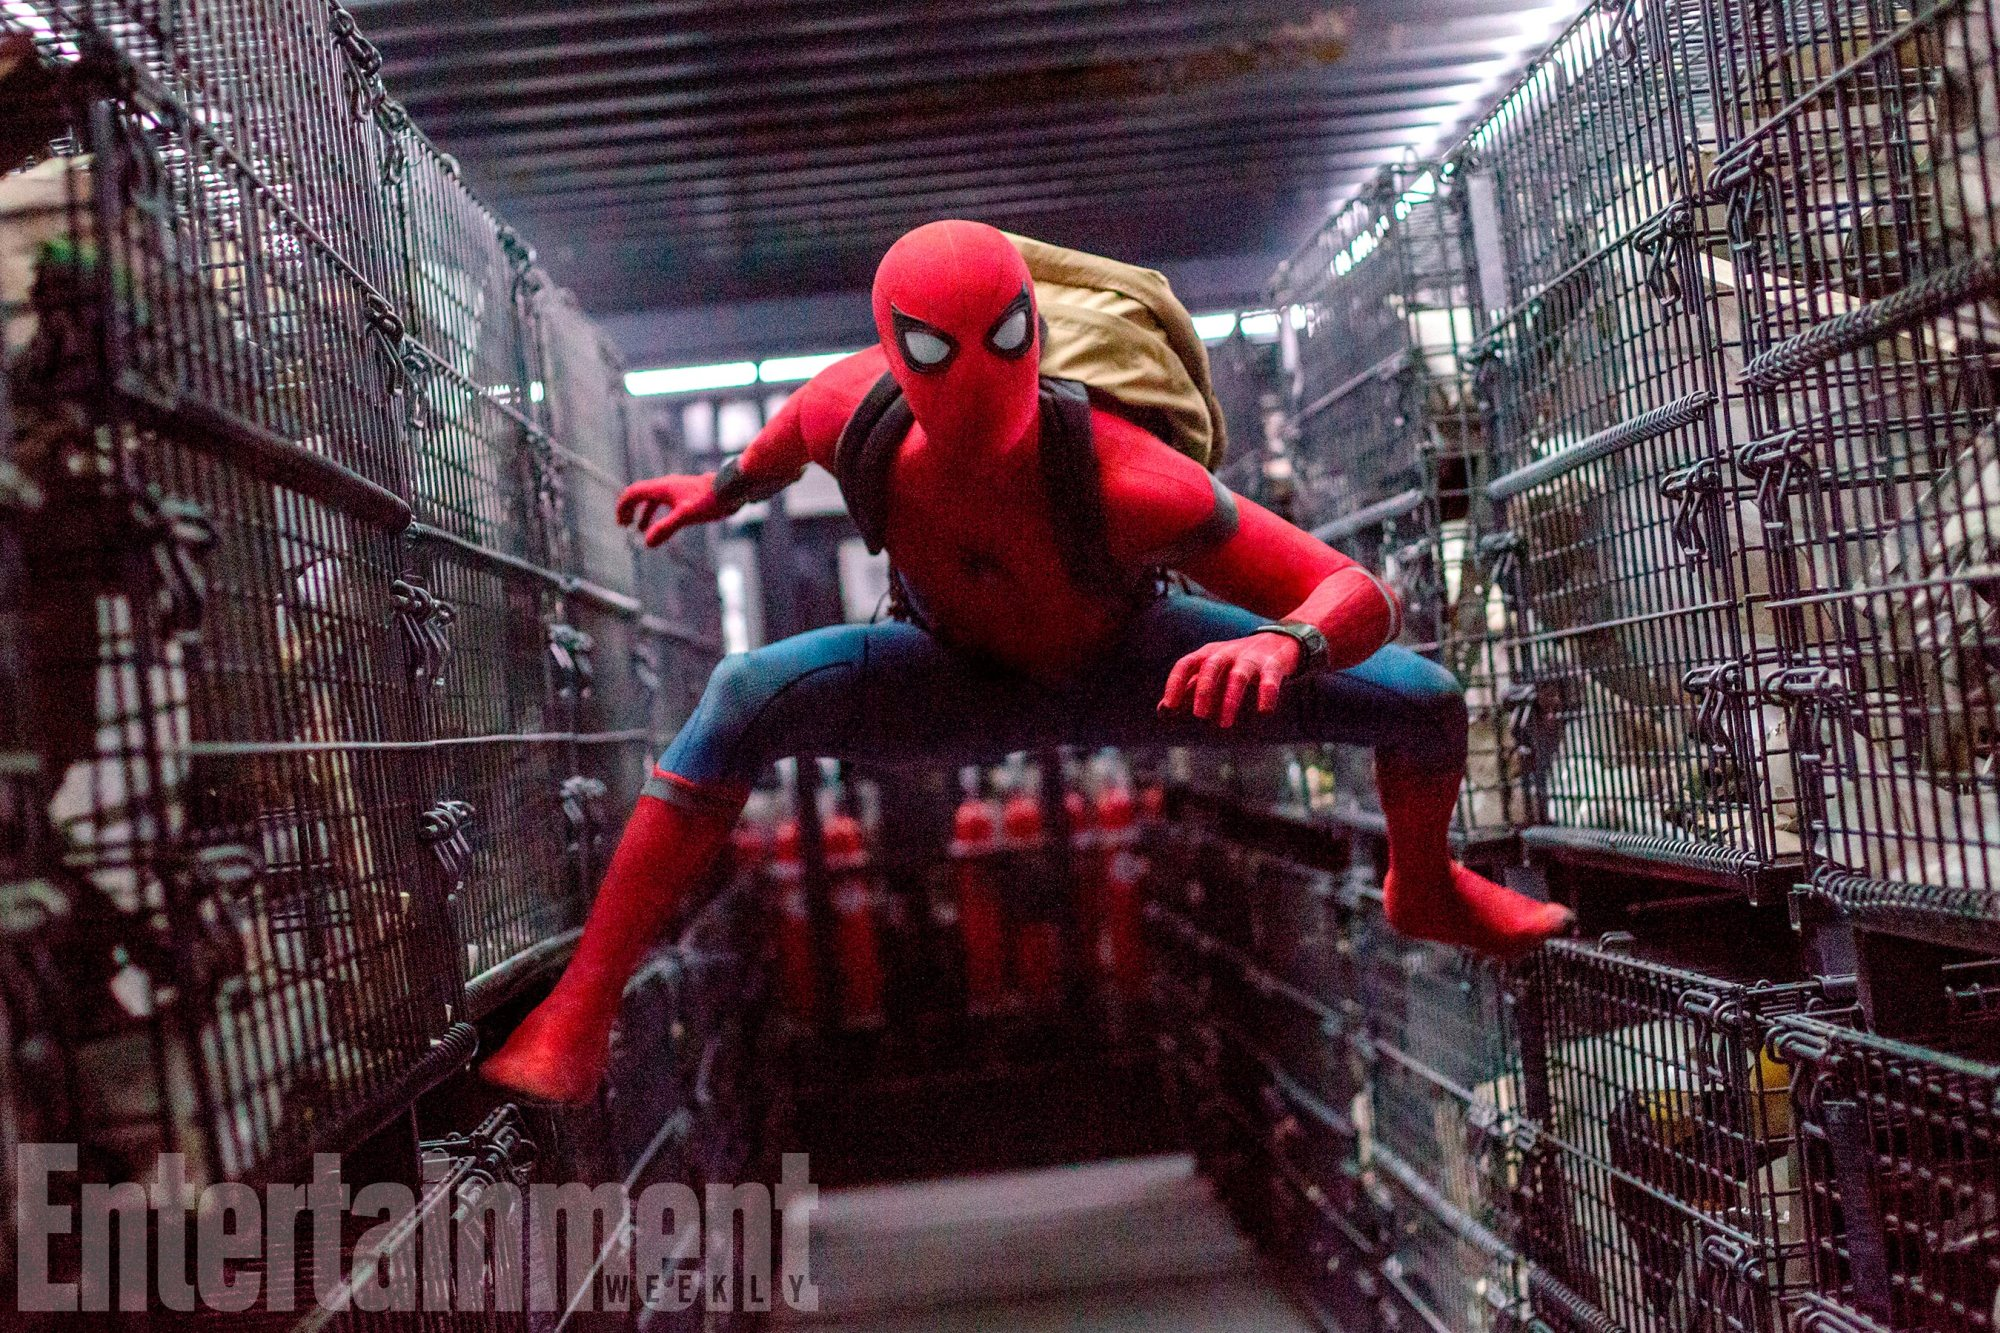 SPIDER-MAN: HOMECOMING (2017) Tom Holland